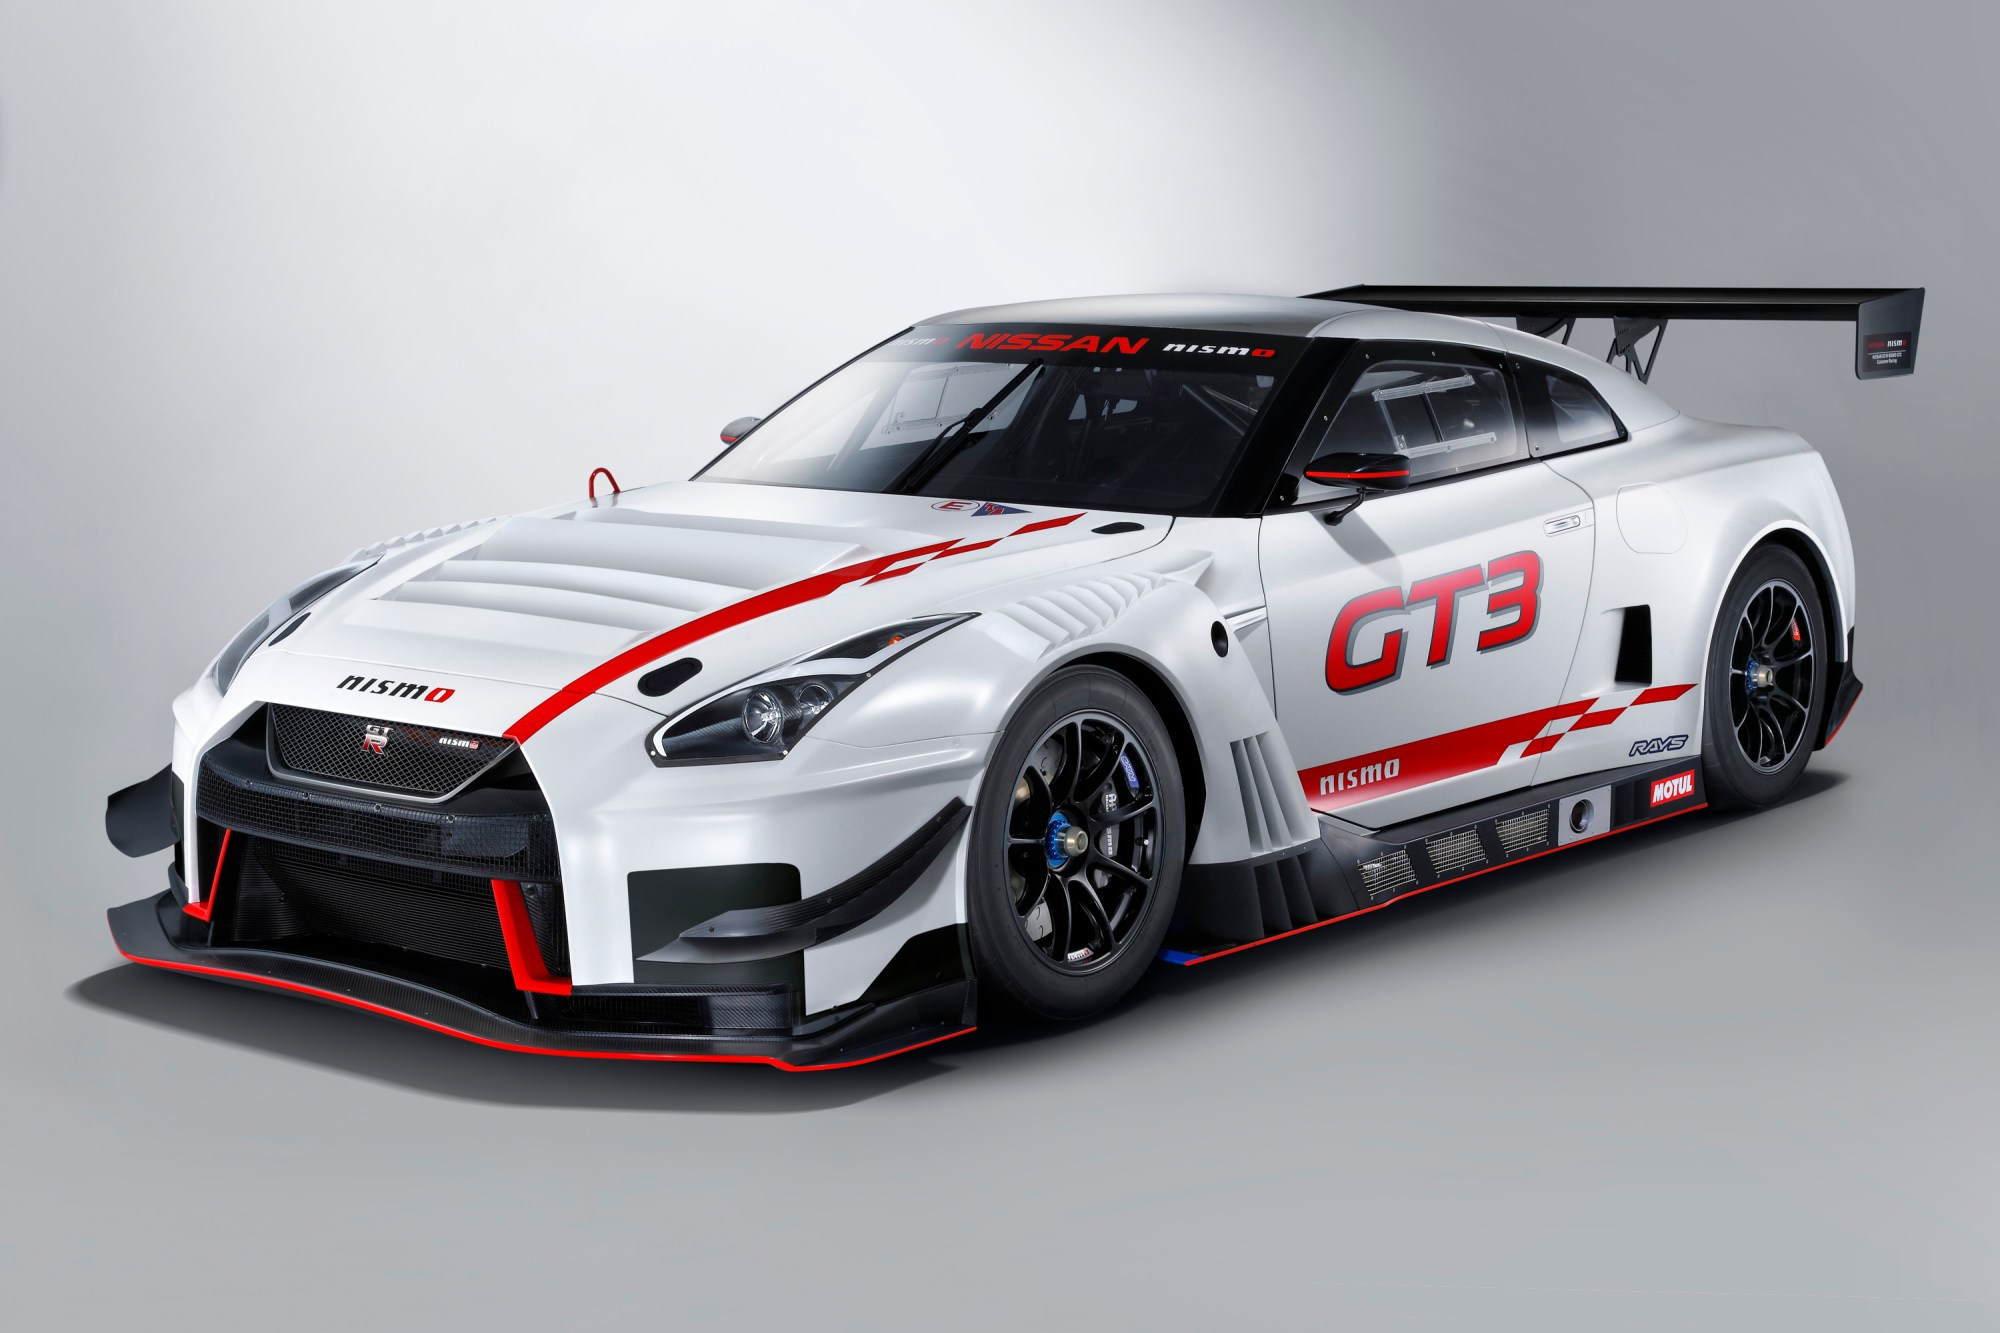 hight resolution of 2019 nissan gt r nismo gt3 top speed